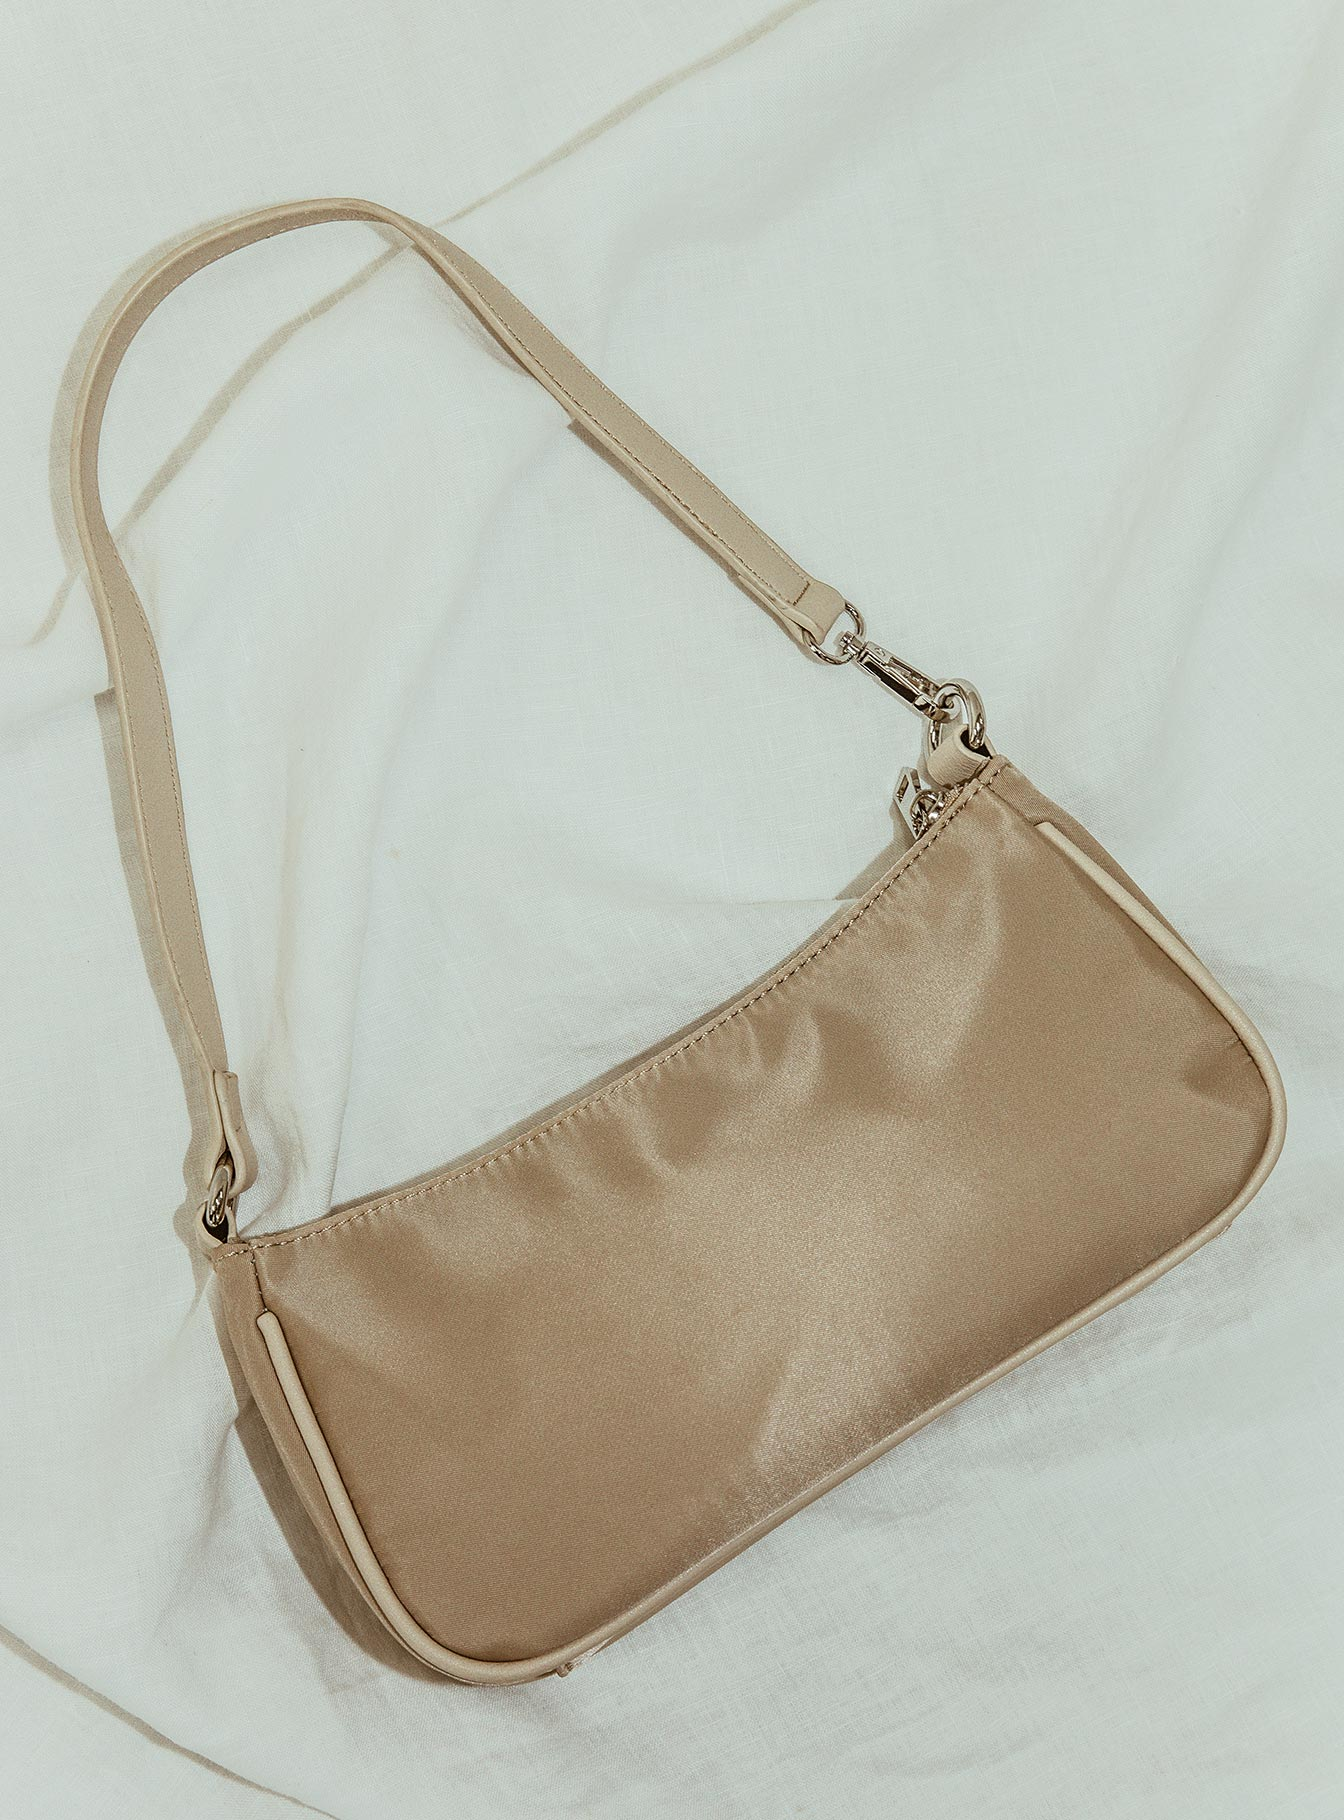 Peta & Jain Piper Bag Beige Nylon